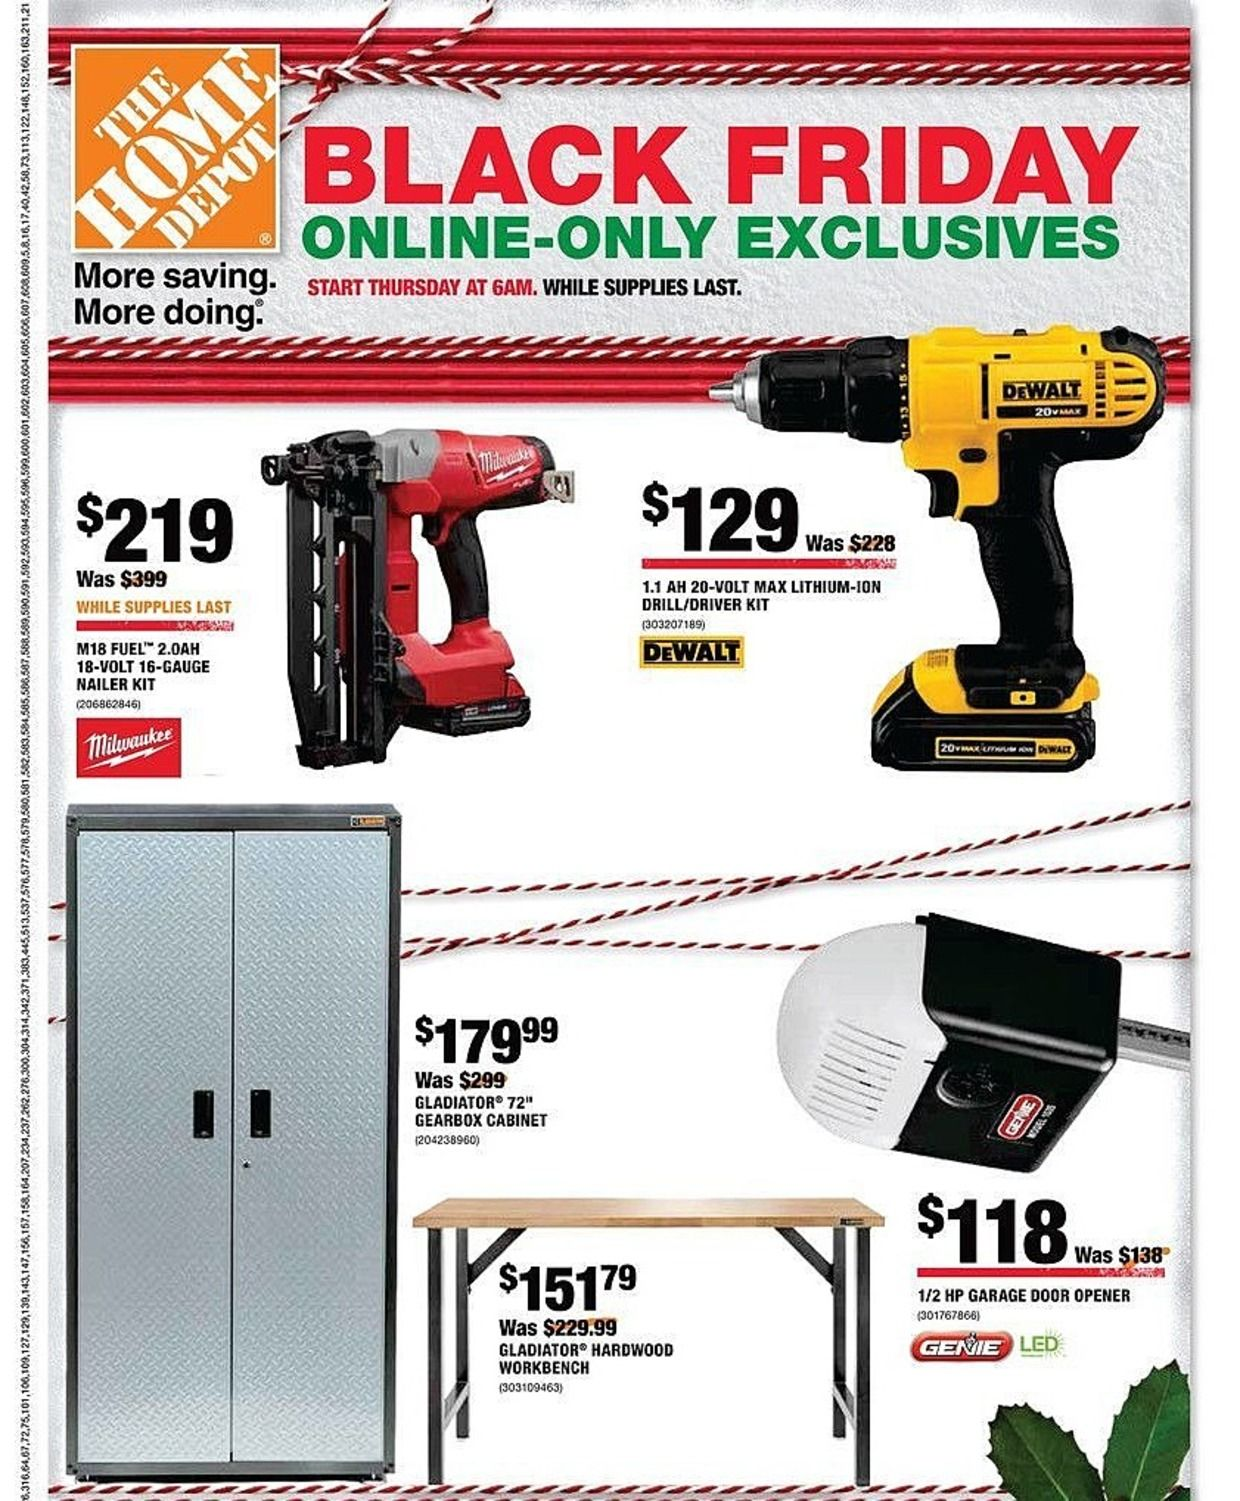 Home Depot Black Friday 2019 Ads And Deals